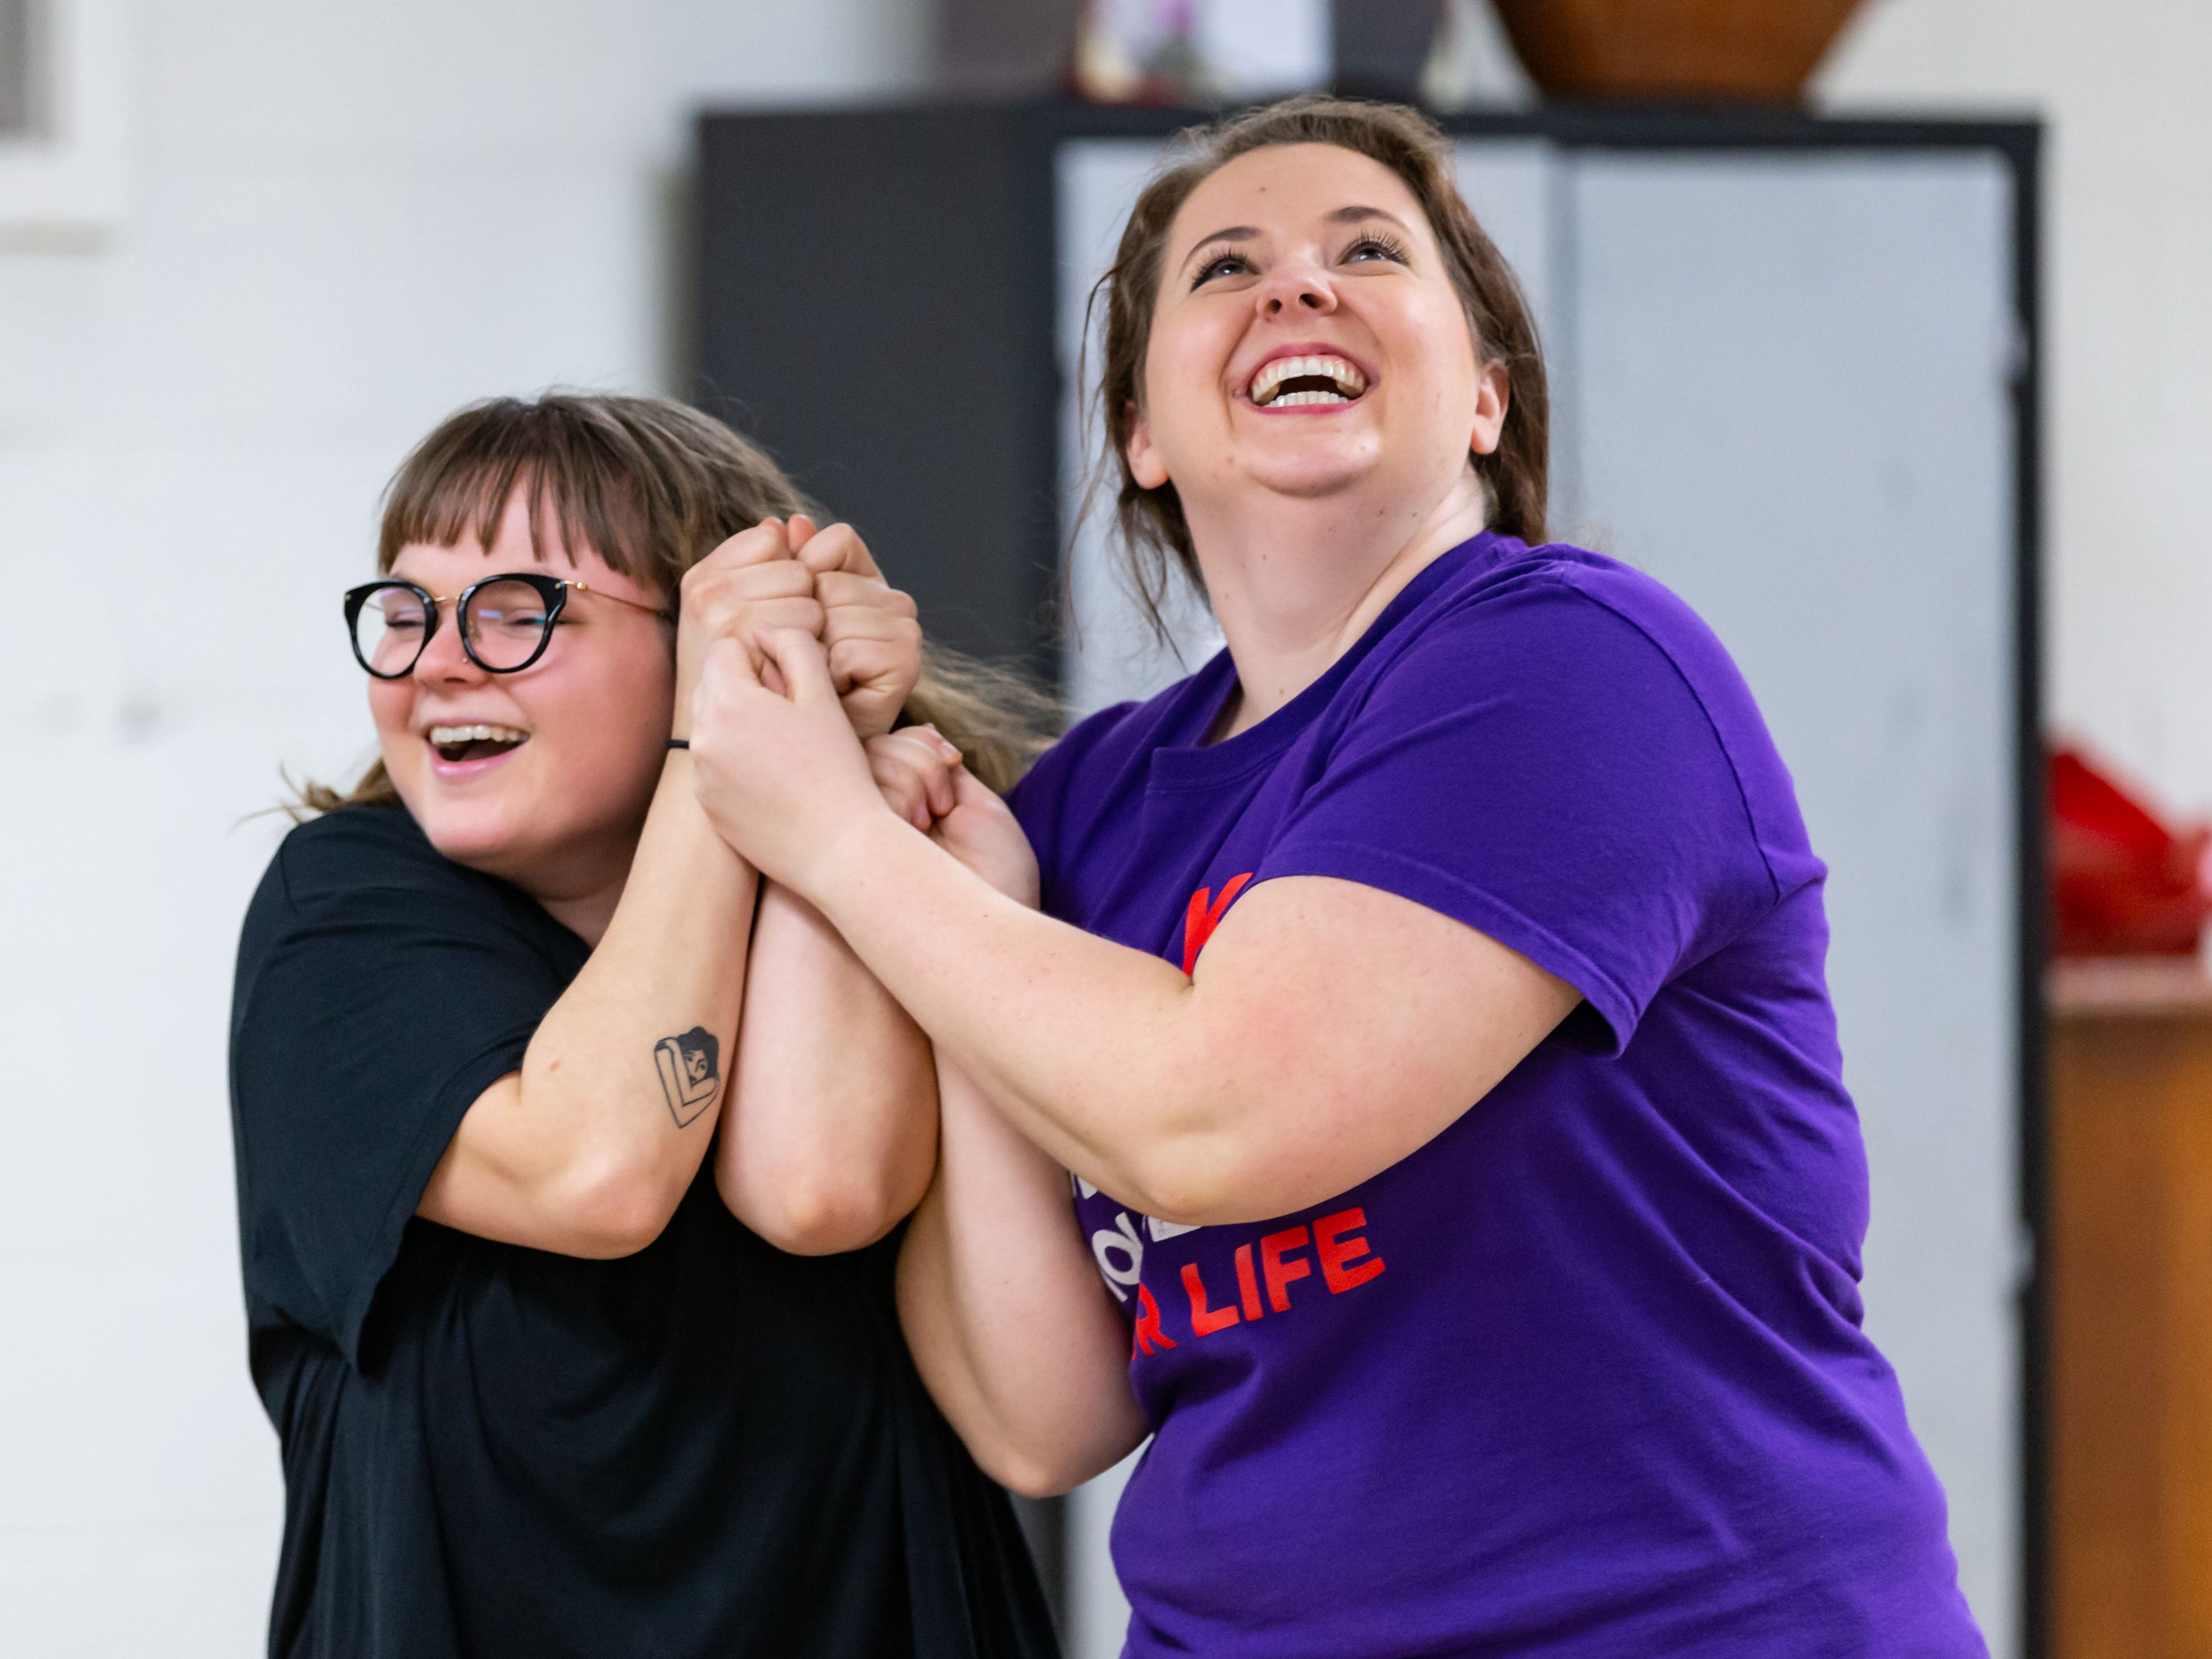 Lake Country Playhouse teaching artists Callyn Klohn (left) and Kathryn Mooers demonstrate a scene during a free, Open House theatre class in Hartland on Monday, Jan. 7, 2019. For more information visit LakeCountryPlayhouseWI.org.